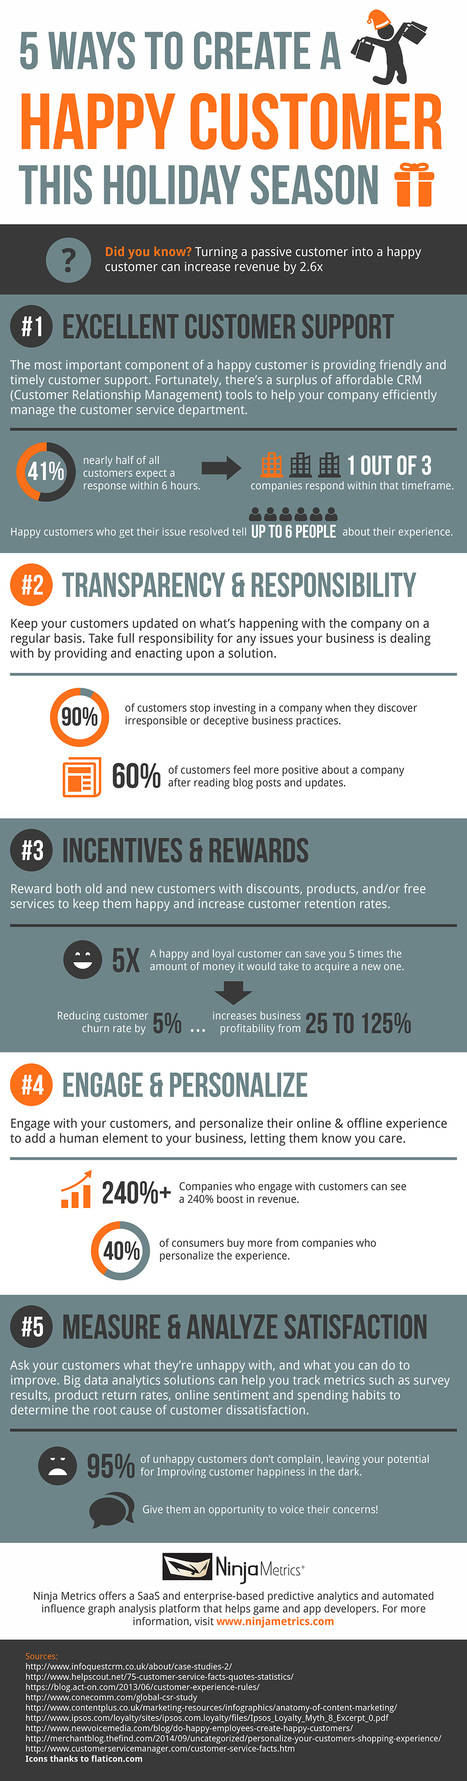 Creating a Happy Customer Throughout the Holidays #Infographic | MarketingHits | Scoop.it